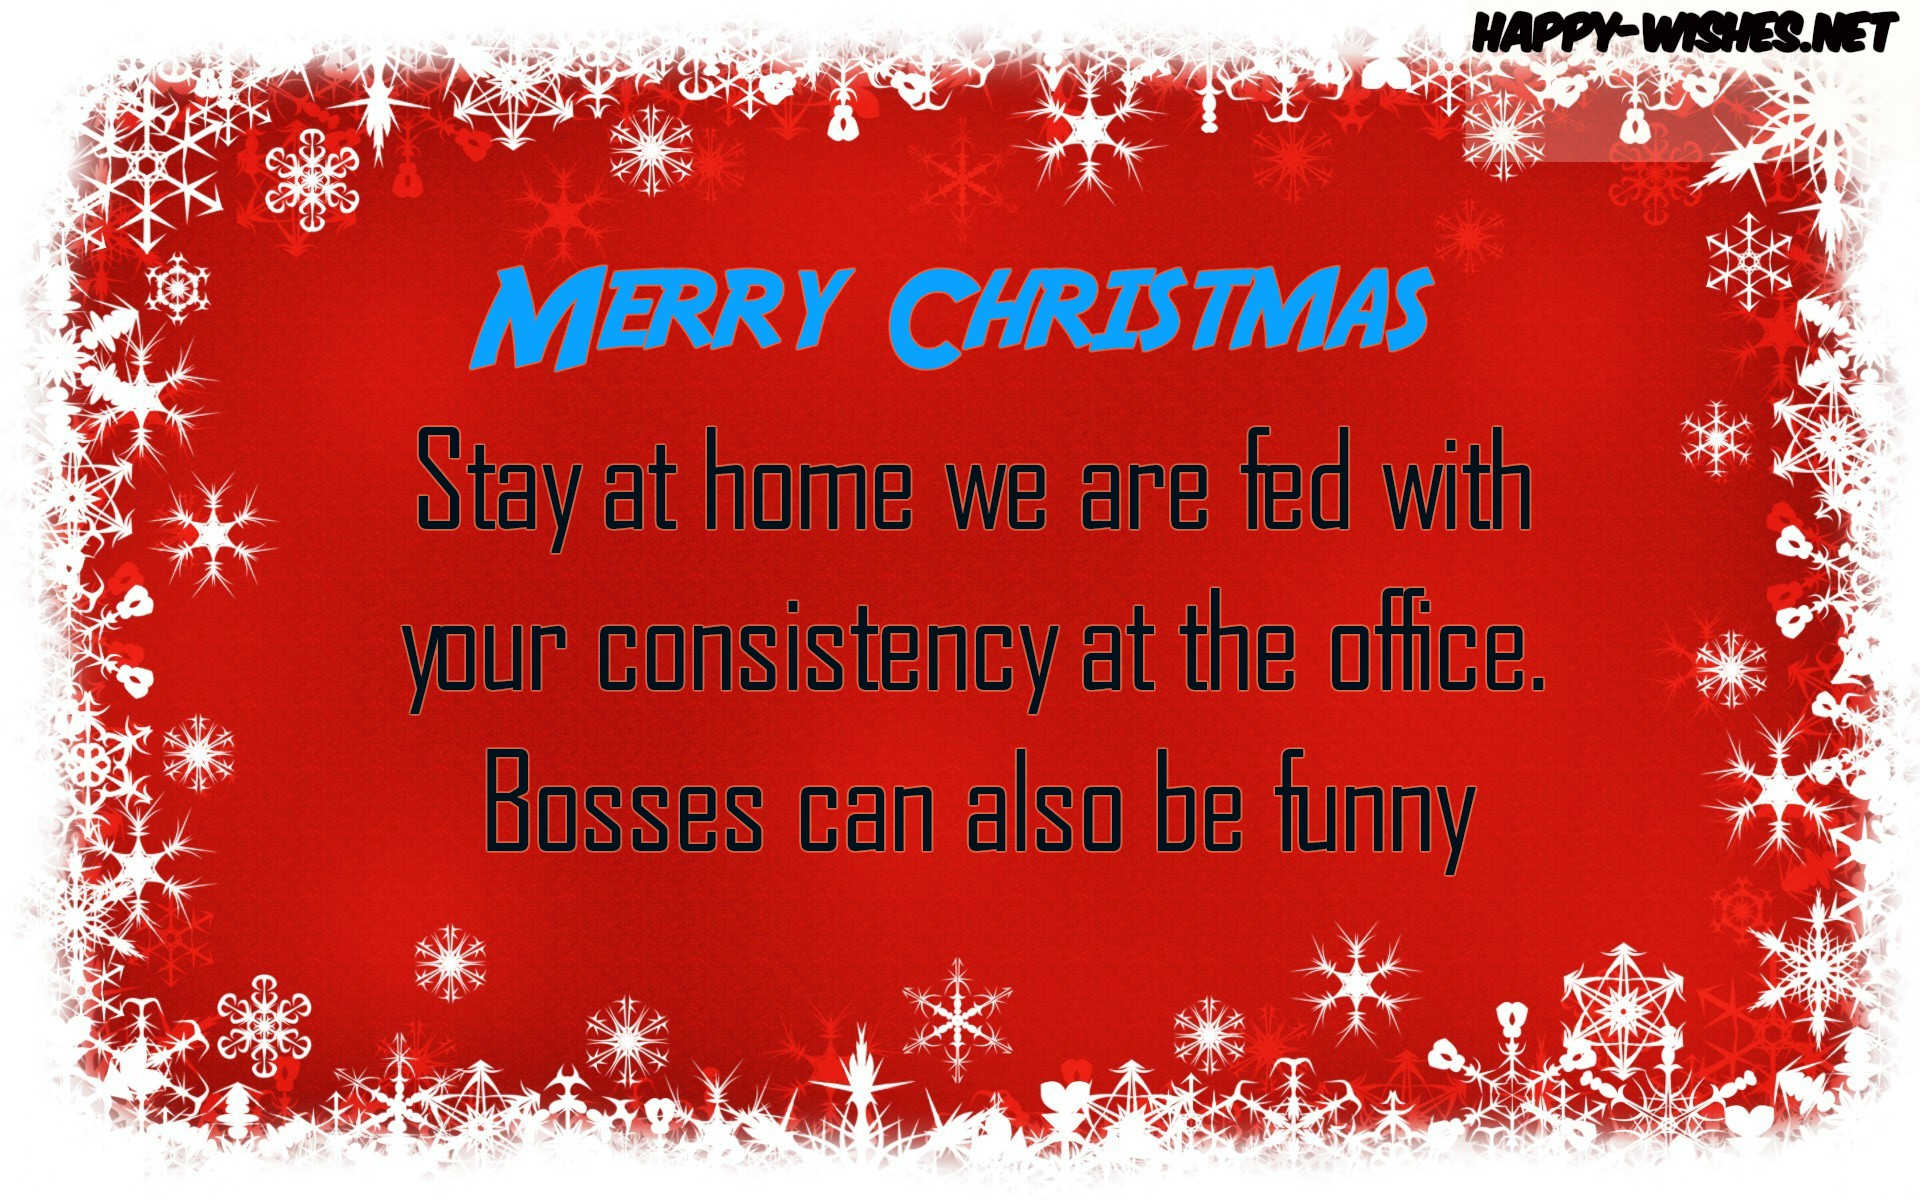 Merry Christmas To the employees from the Boss